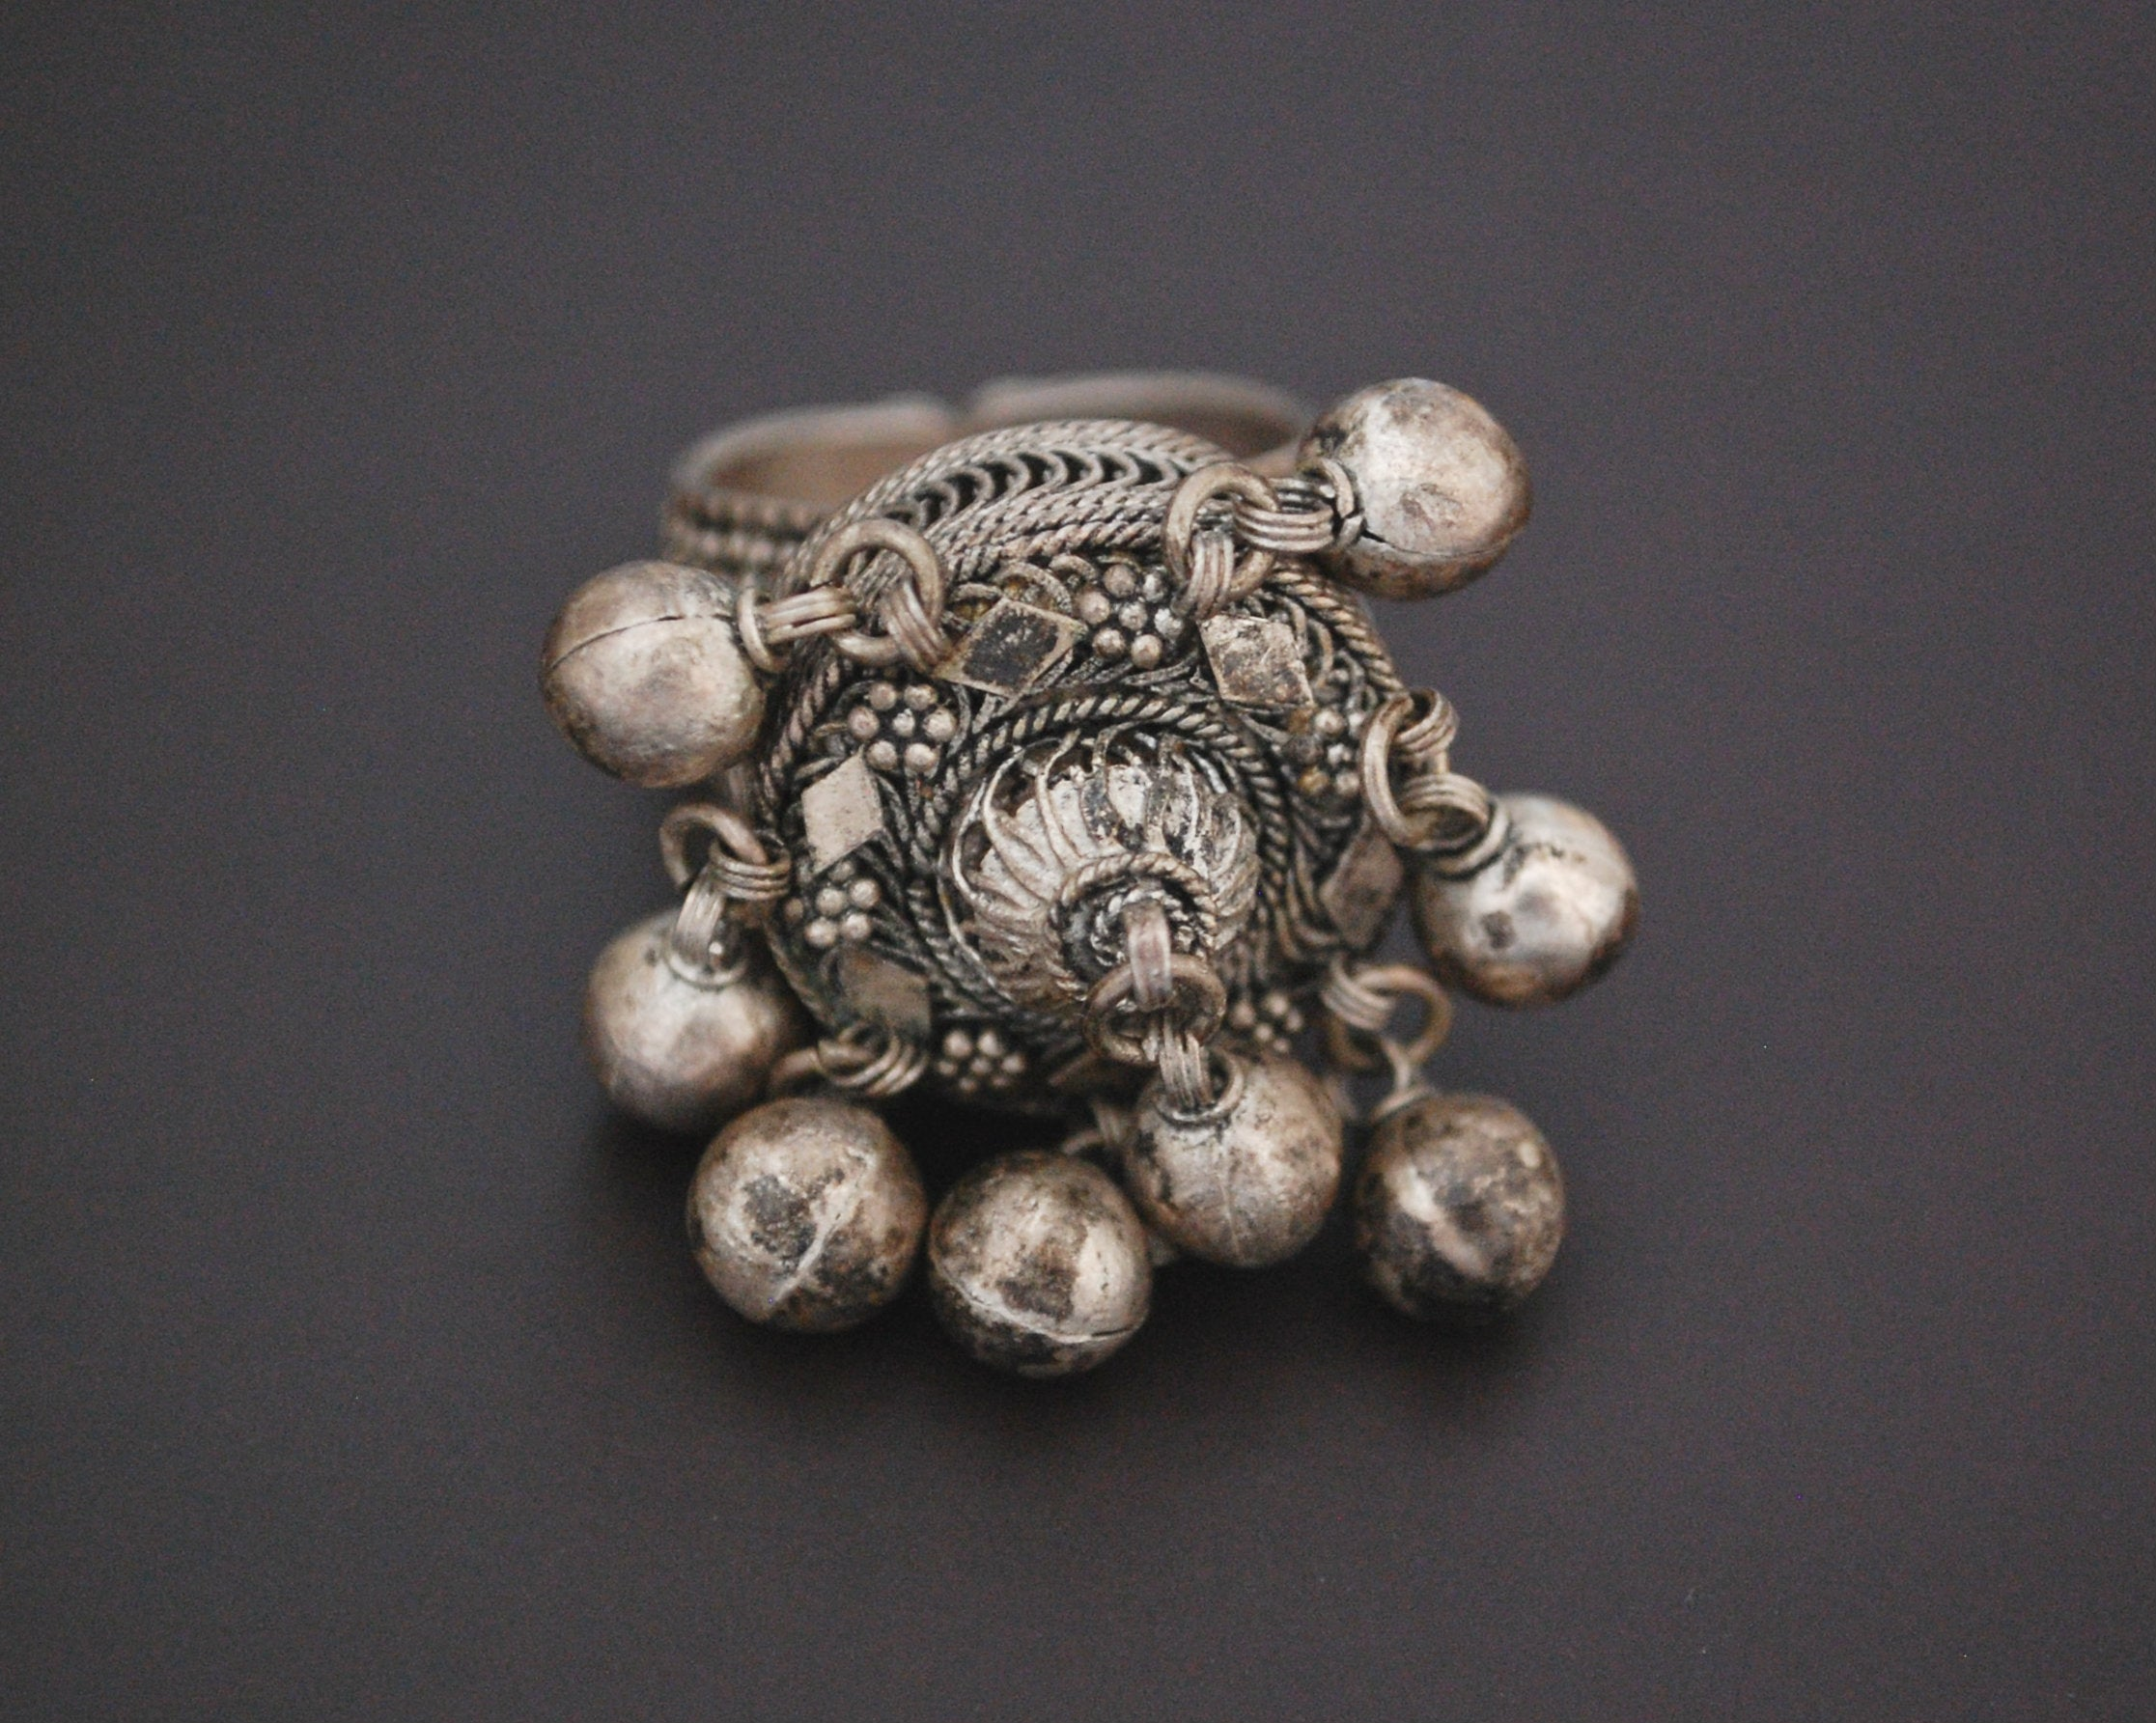 Yemeni Bedouin Ring with Bells - Size 7.25